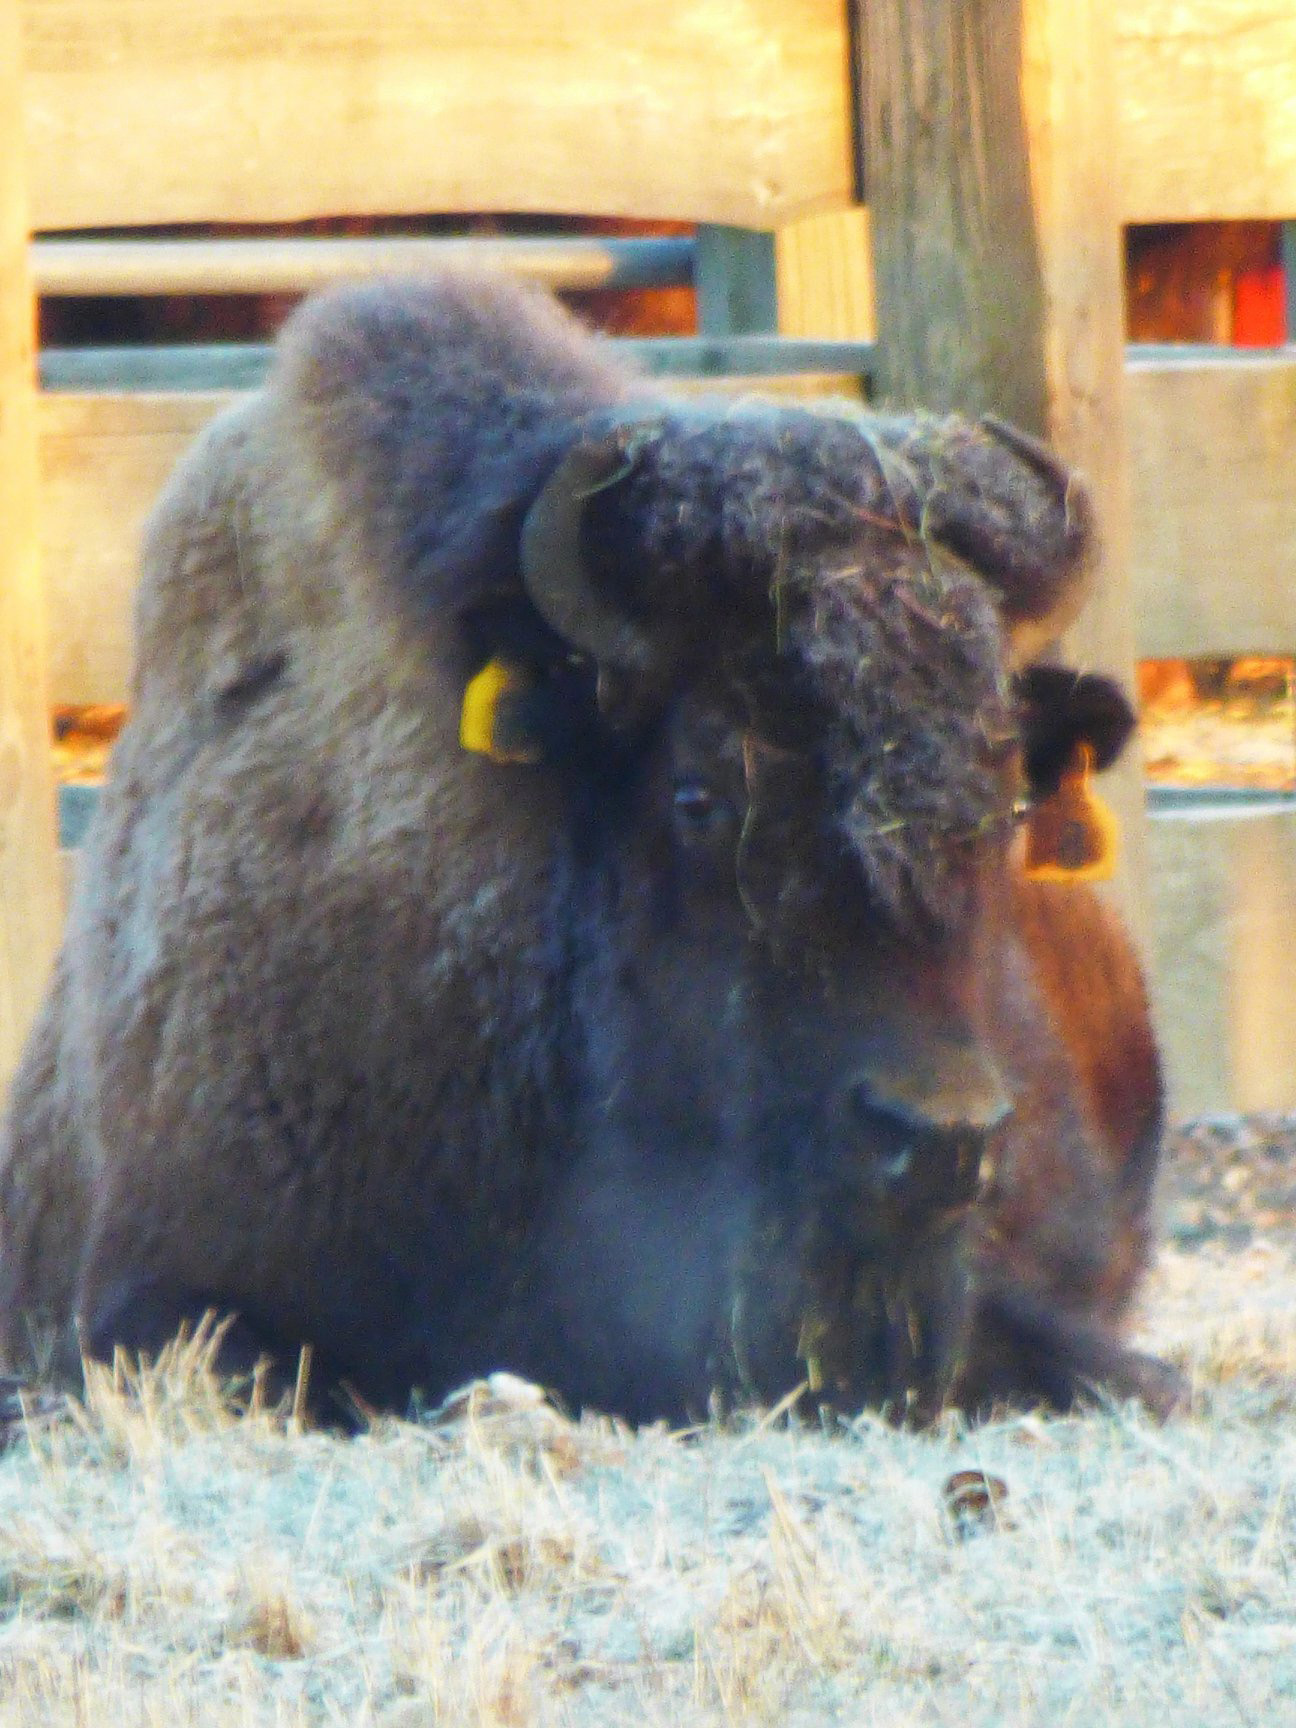 (2/2) This bison is fully content being covered in frost. Photo: Amy Scroggins, nature, wildlife, animal, mammal, bison,